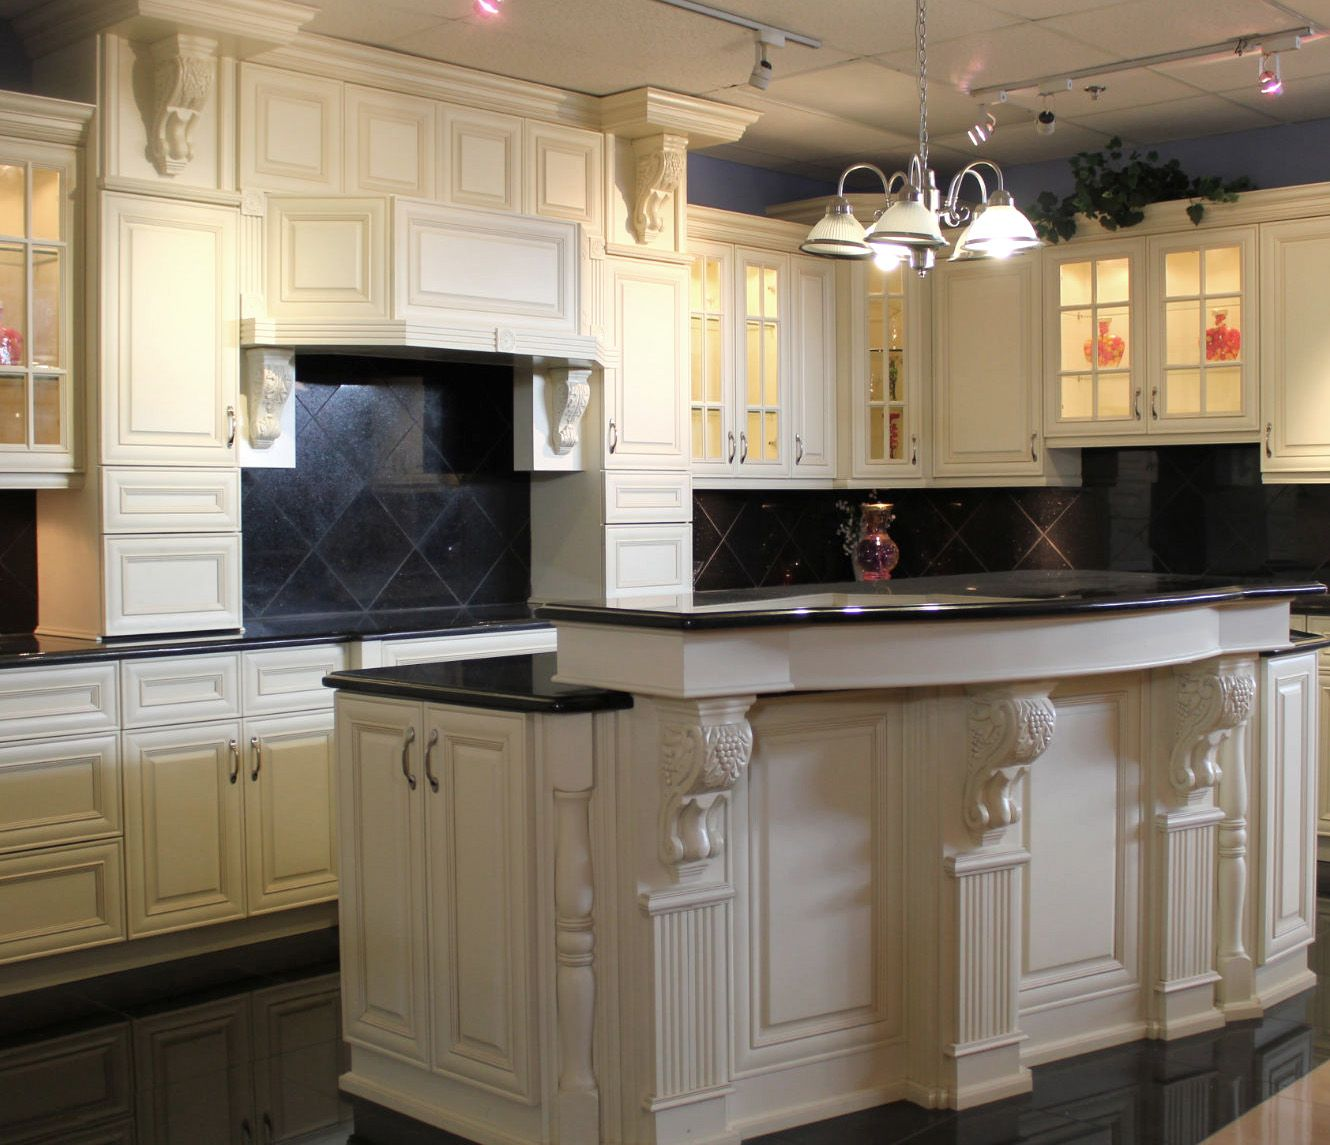 kitchens with white cabinets | antique white kitchen cabinets | Small  Kitchen Design and Photos - Kitchens With White Cabinets Antique White Kitchen Cabinets